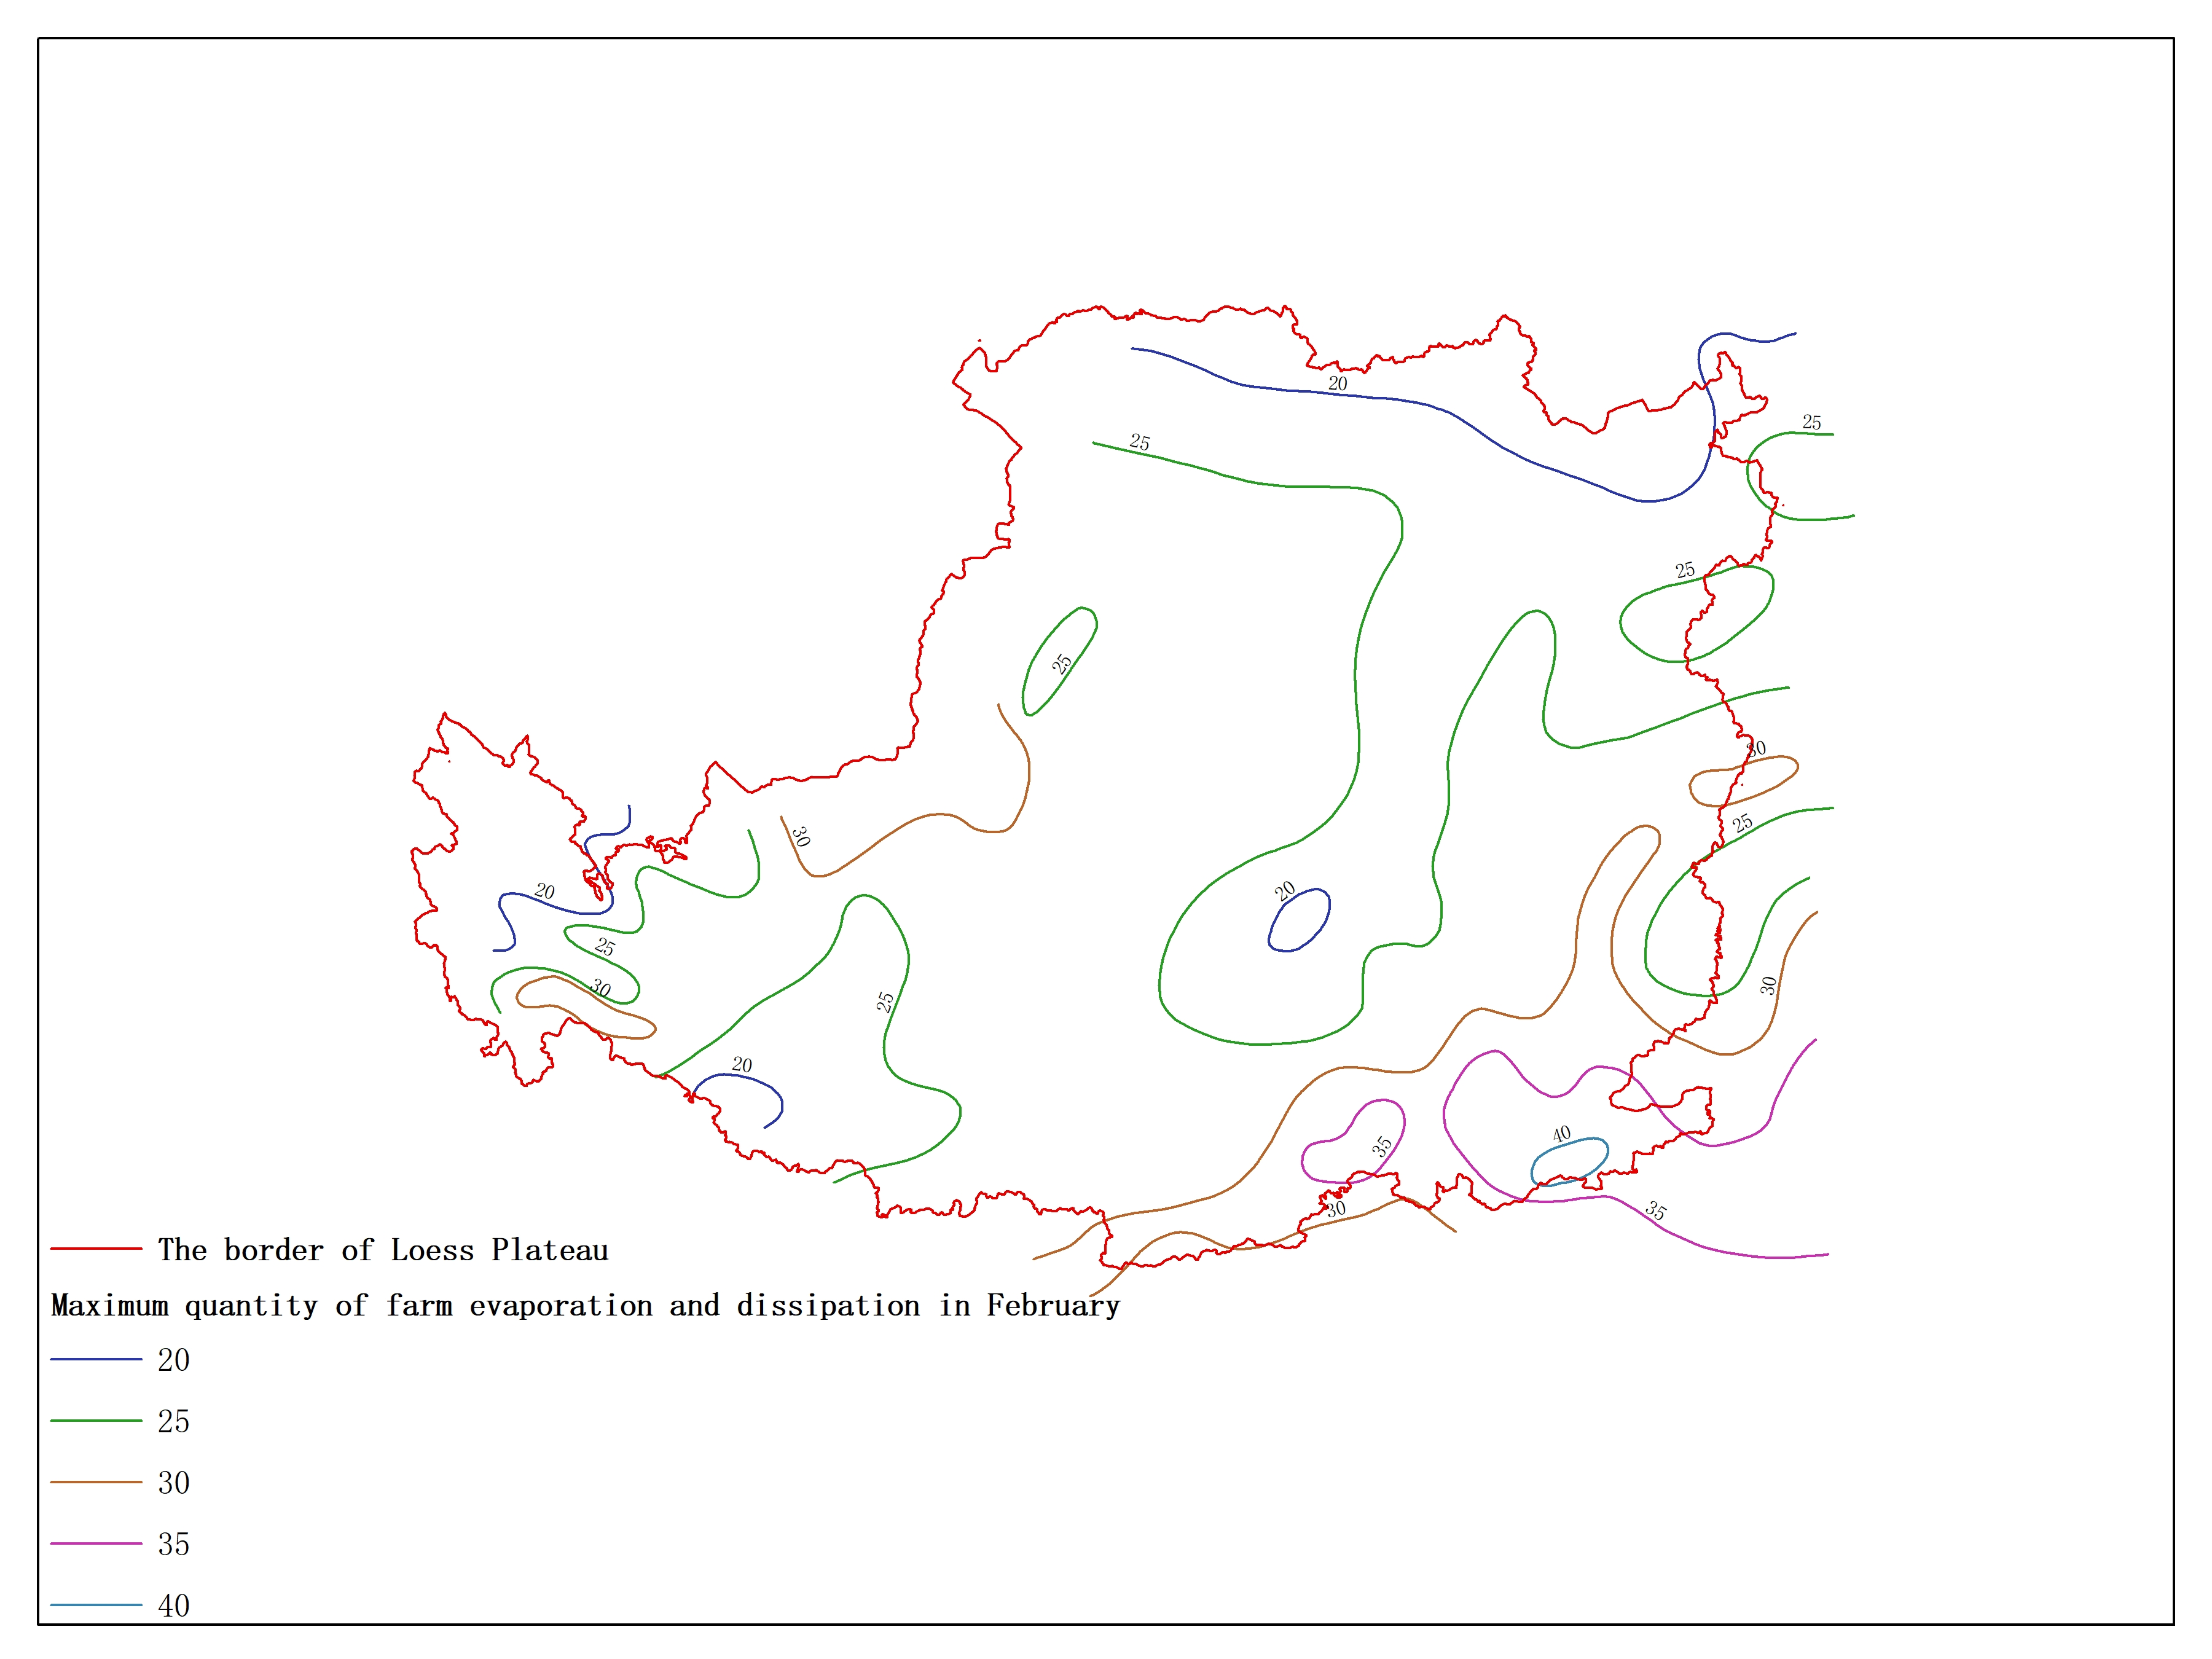 Agricultural climate resource atlas of Loess Plateau-Maximum quantity of farm evaporation and dissipation in February